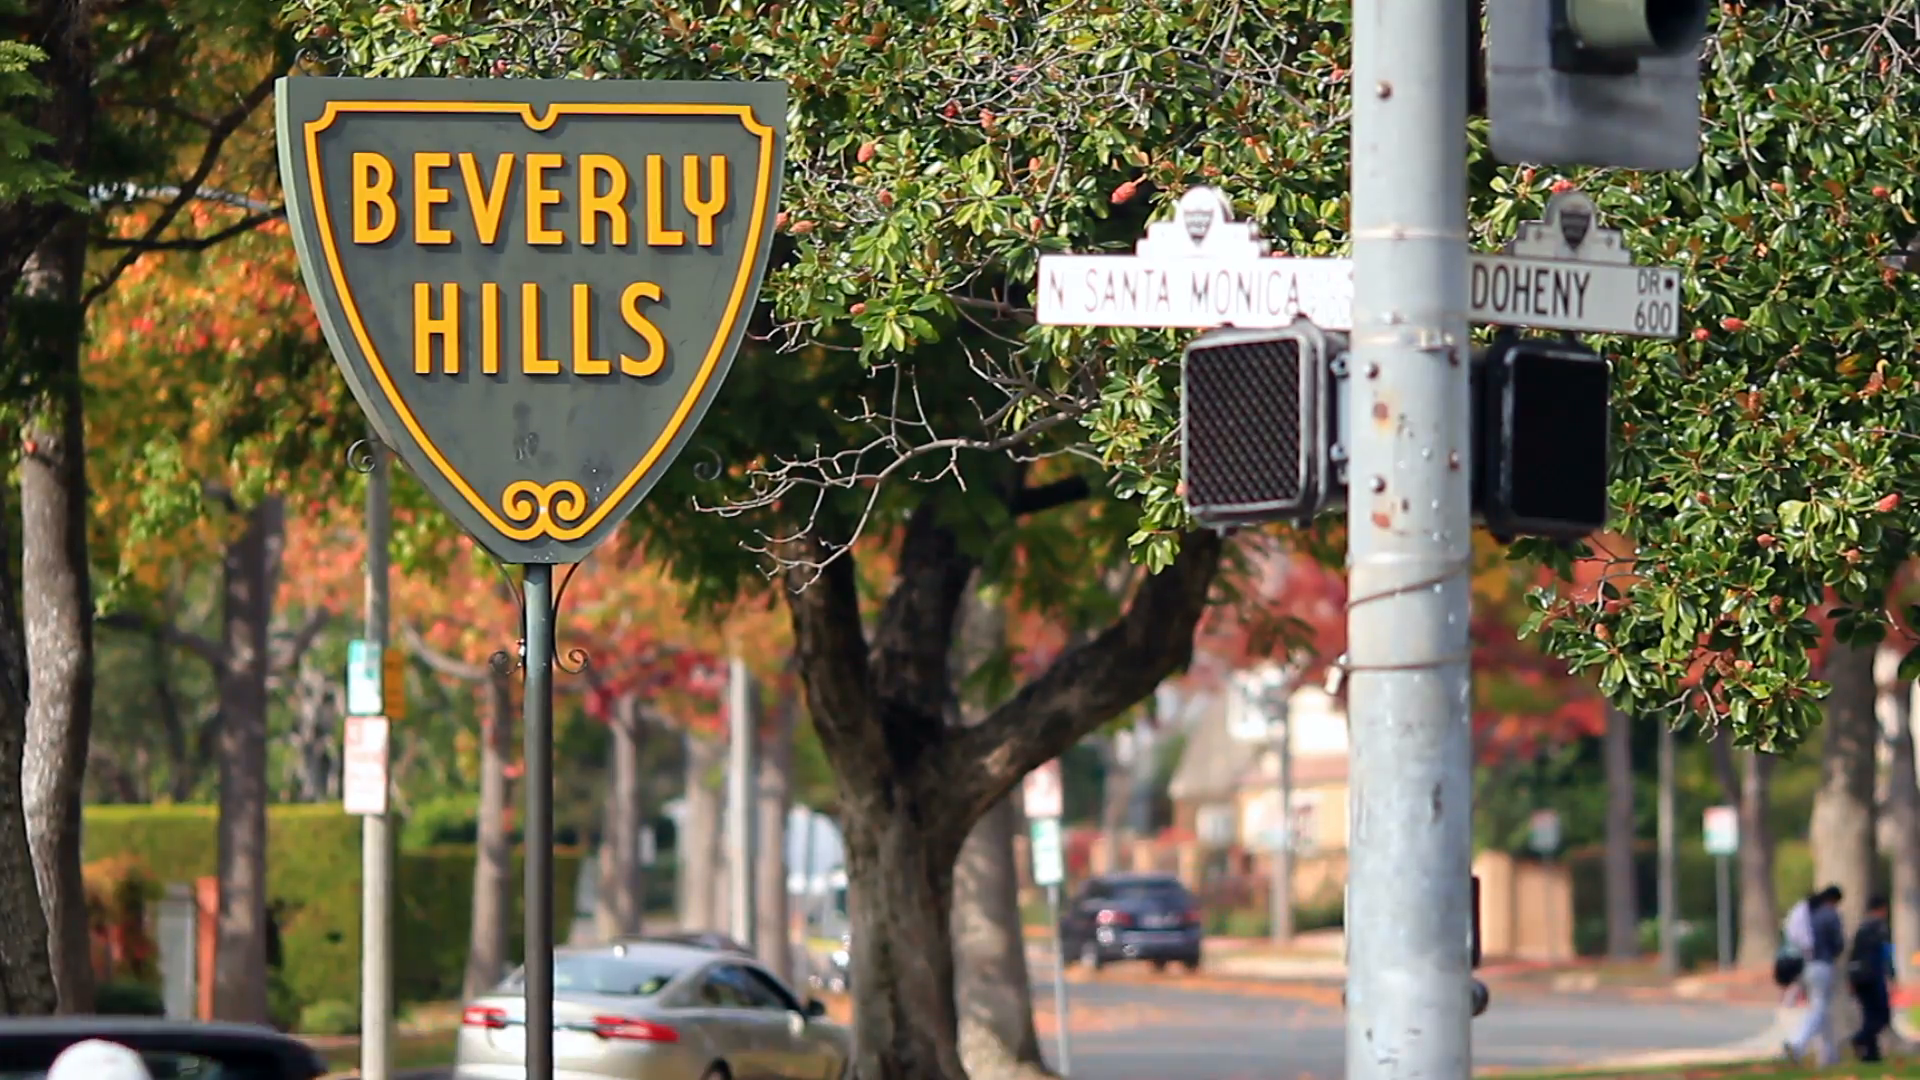 Beverly HIlls Sign 1 The iconic Beverly Hills sign marking the 1920x1080